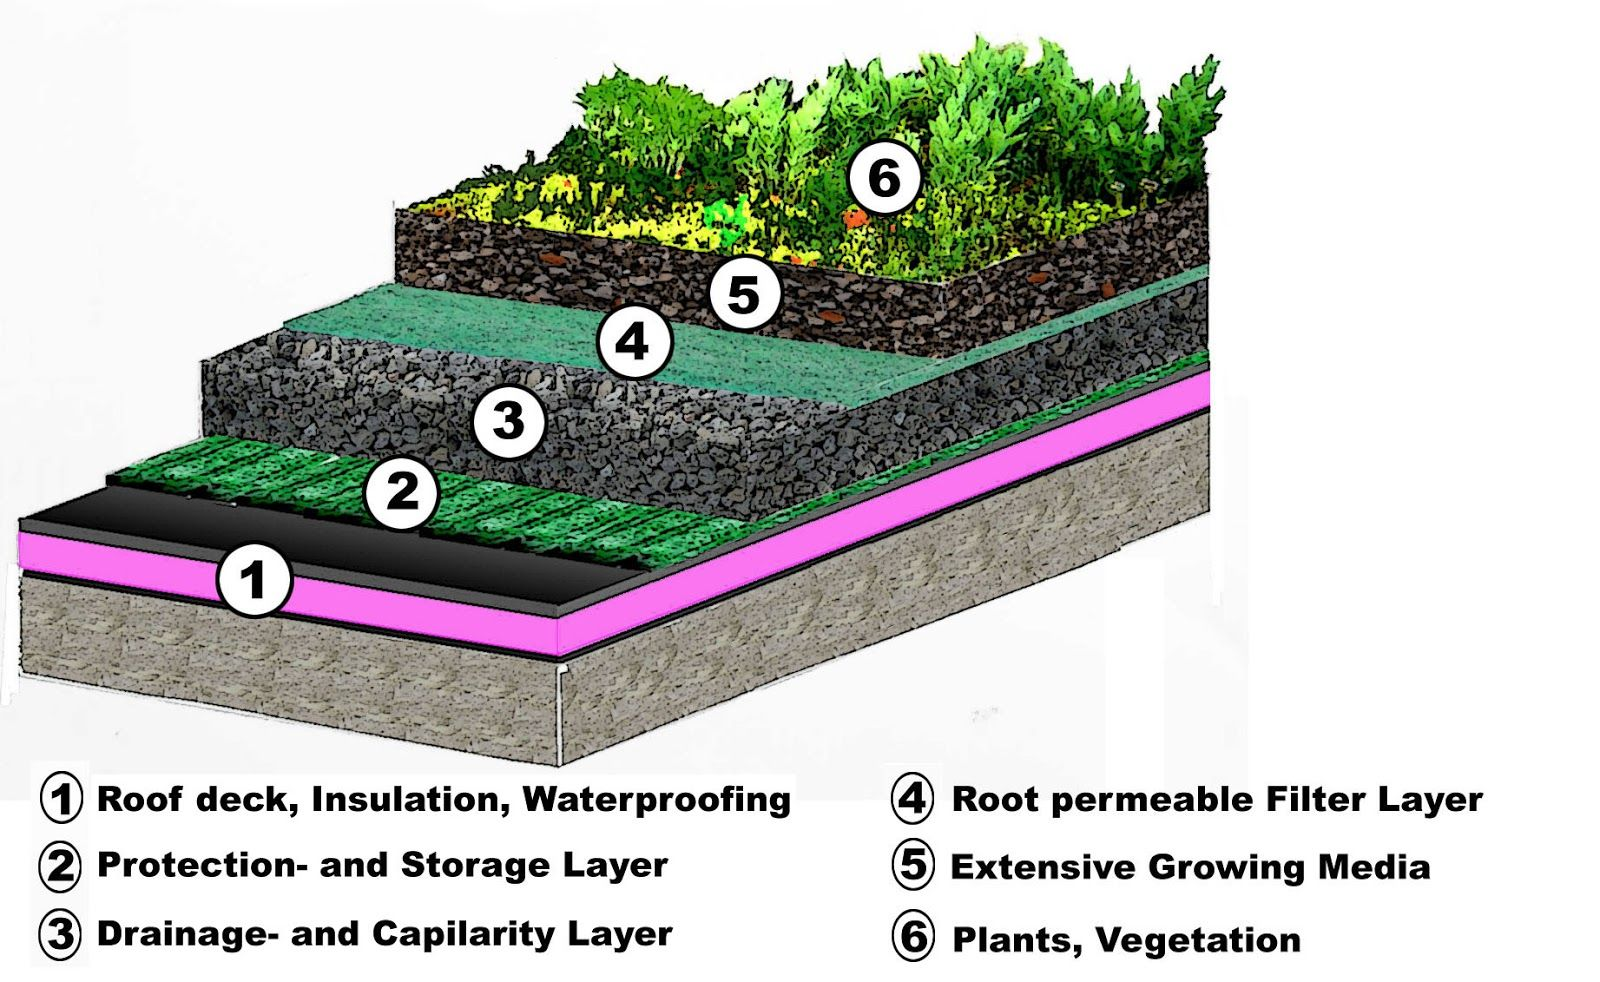 Green Roof Systems Functional Layers Of Typical Green Roof System Green Roof Green Roof Design Green Roof Benefits